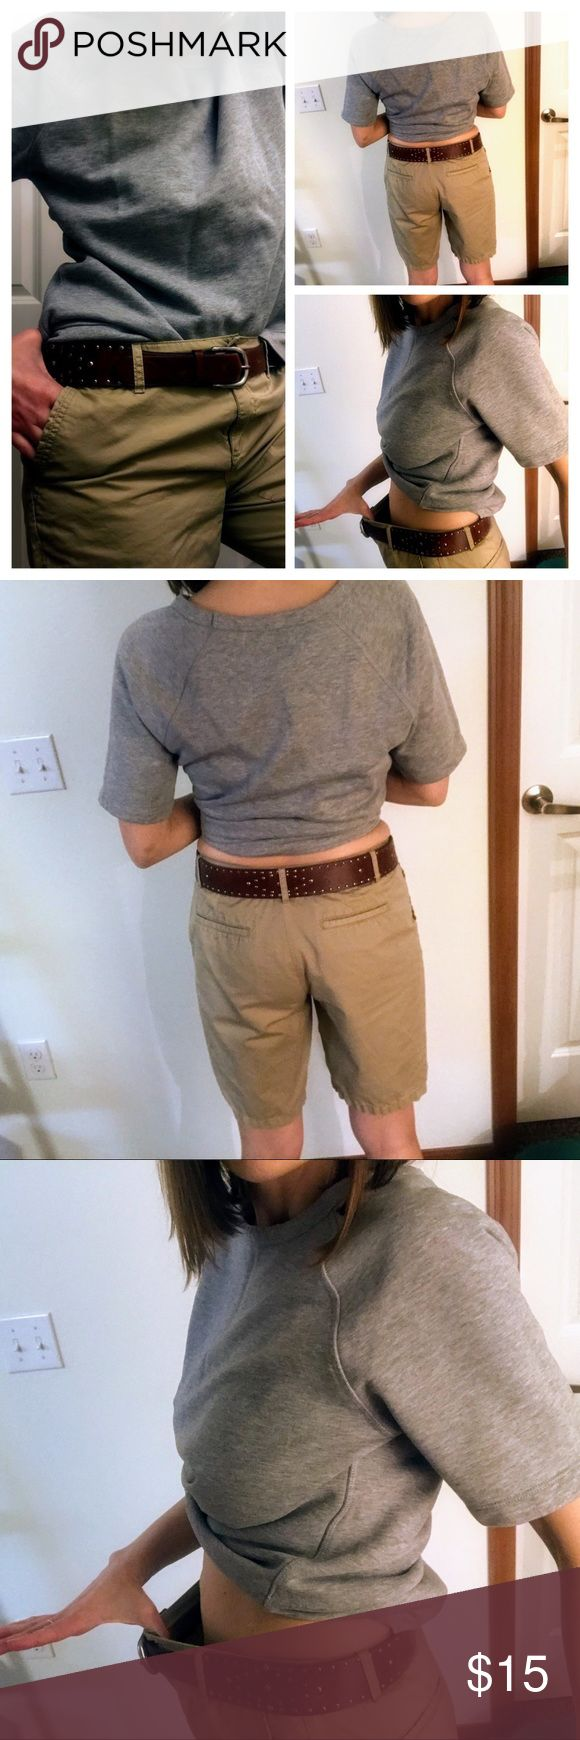 "• Bermuda Shorts • excellent preloved condition • size 8, modeling to show fit and length. I am size 6 and 5'8"" • this length works for so many body types and occasions.. spring and summer closet staple    Tags: Tan Khaki hiking outdoors minimalist spring shorts classic boating nautical preppy Shorts Bermudas #summeroutdoorfitness"